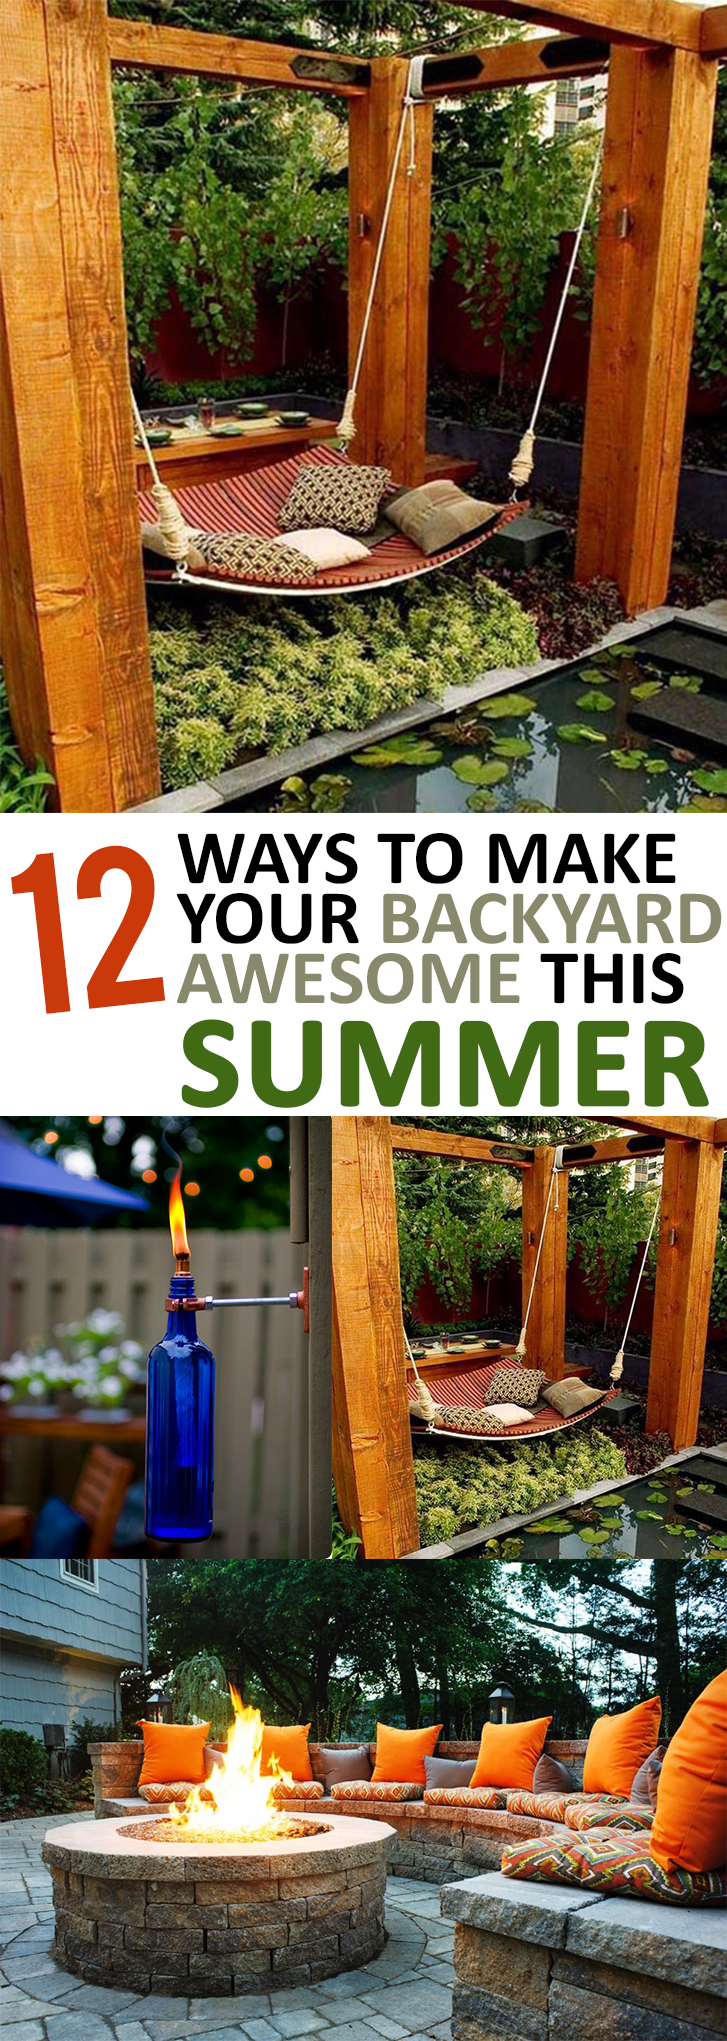 Backyard projects, DIY backyard projects, summer projects, backyard updates, DIY backyard updates, popular pin, summer activities, tutorials.